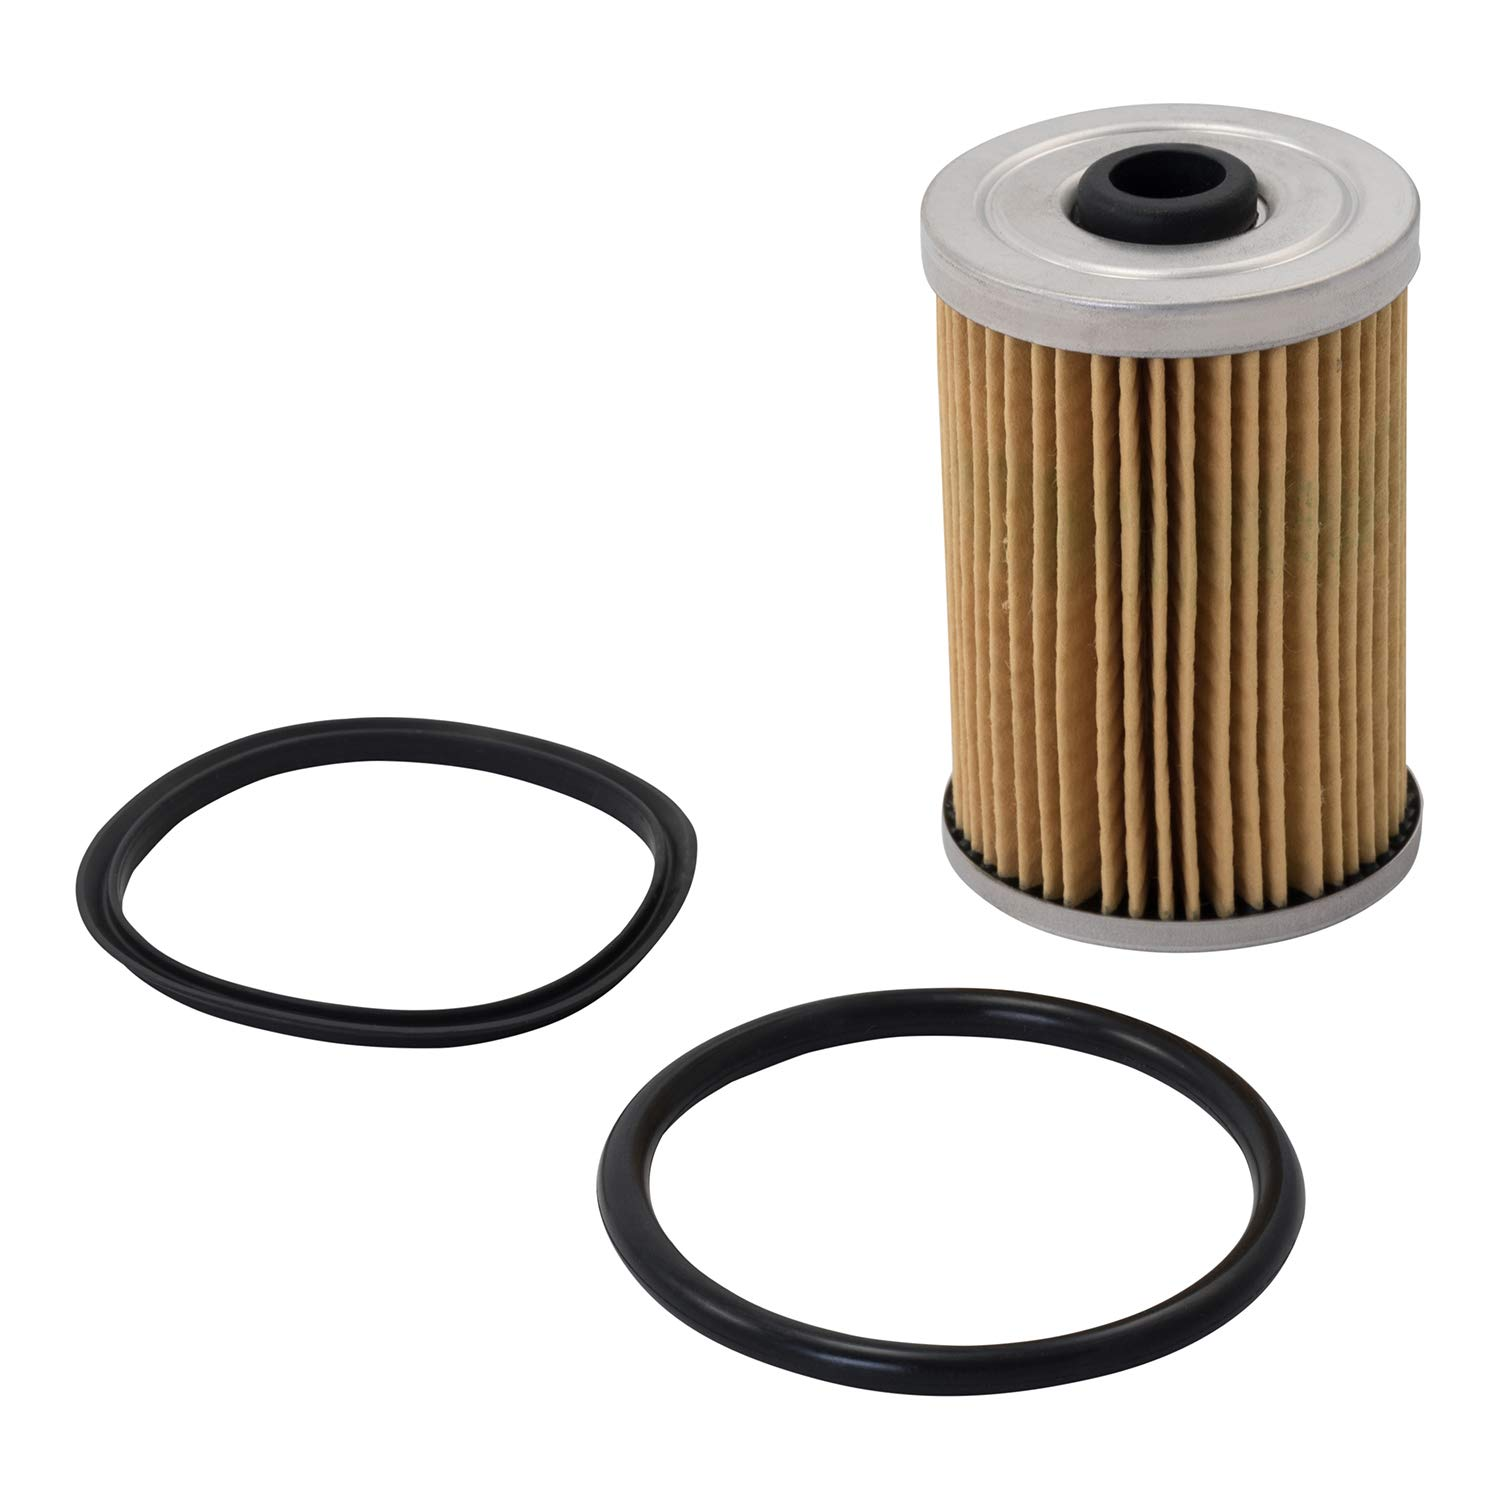 Amazon.com : Quicksilver 8M0093688 Water Separating Fuel Filter -  MerCruiser Engines with Gen III Fuel Cooler : Boat Fuel Filters : Sports &  Outdoors